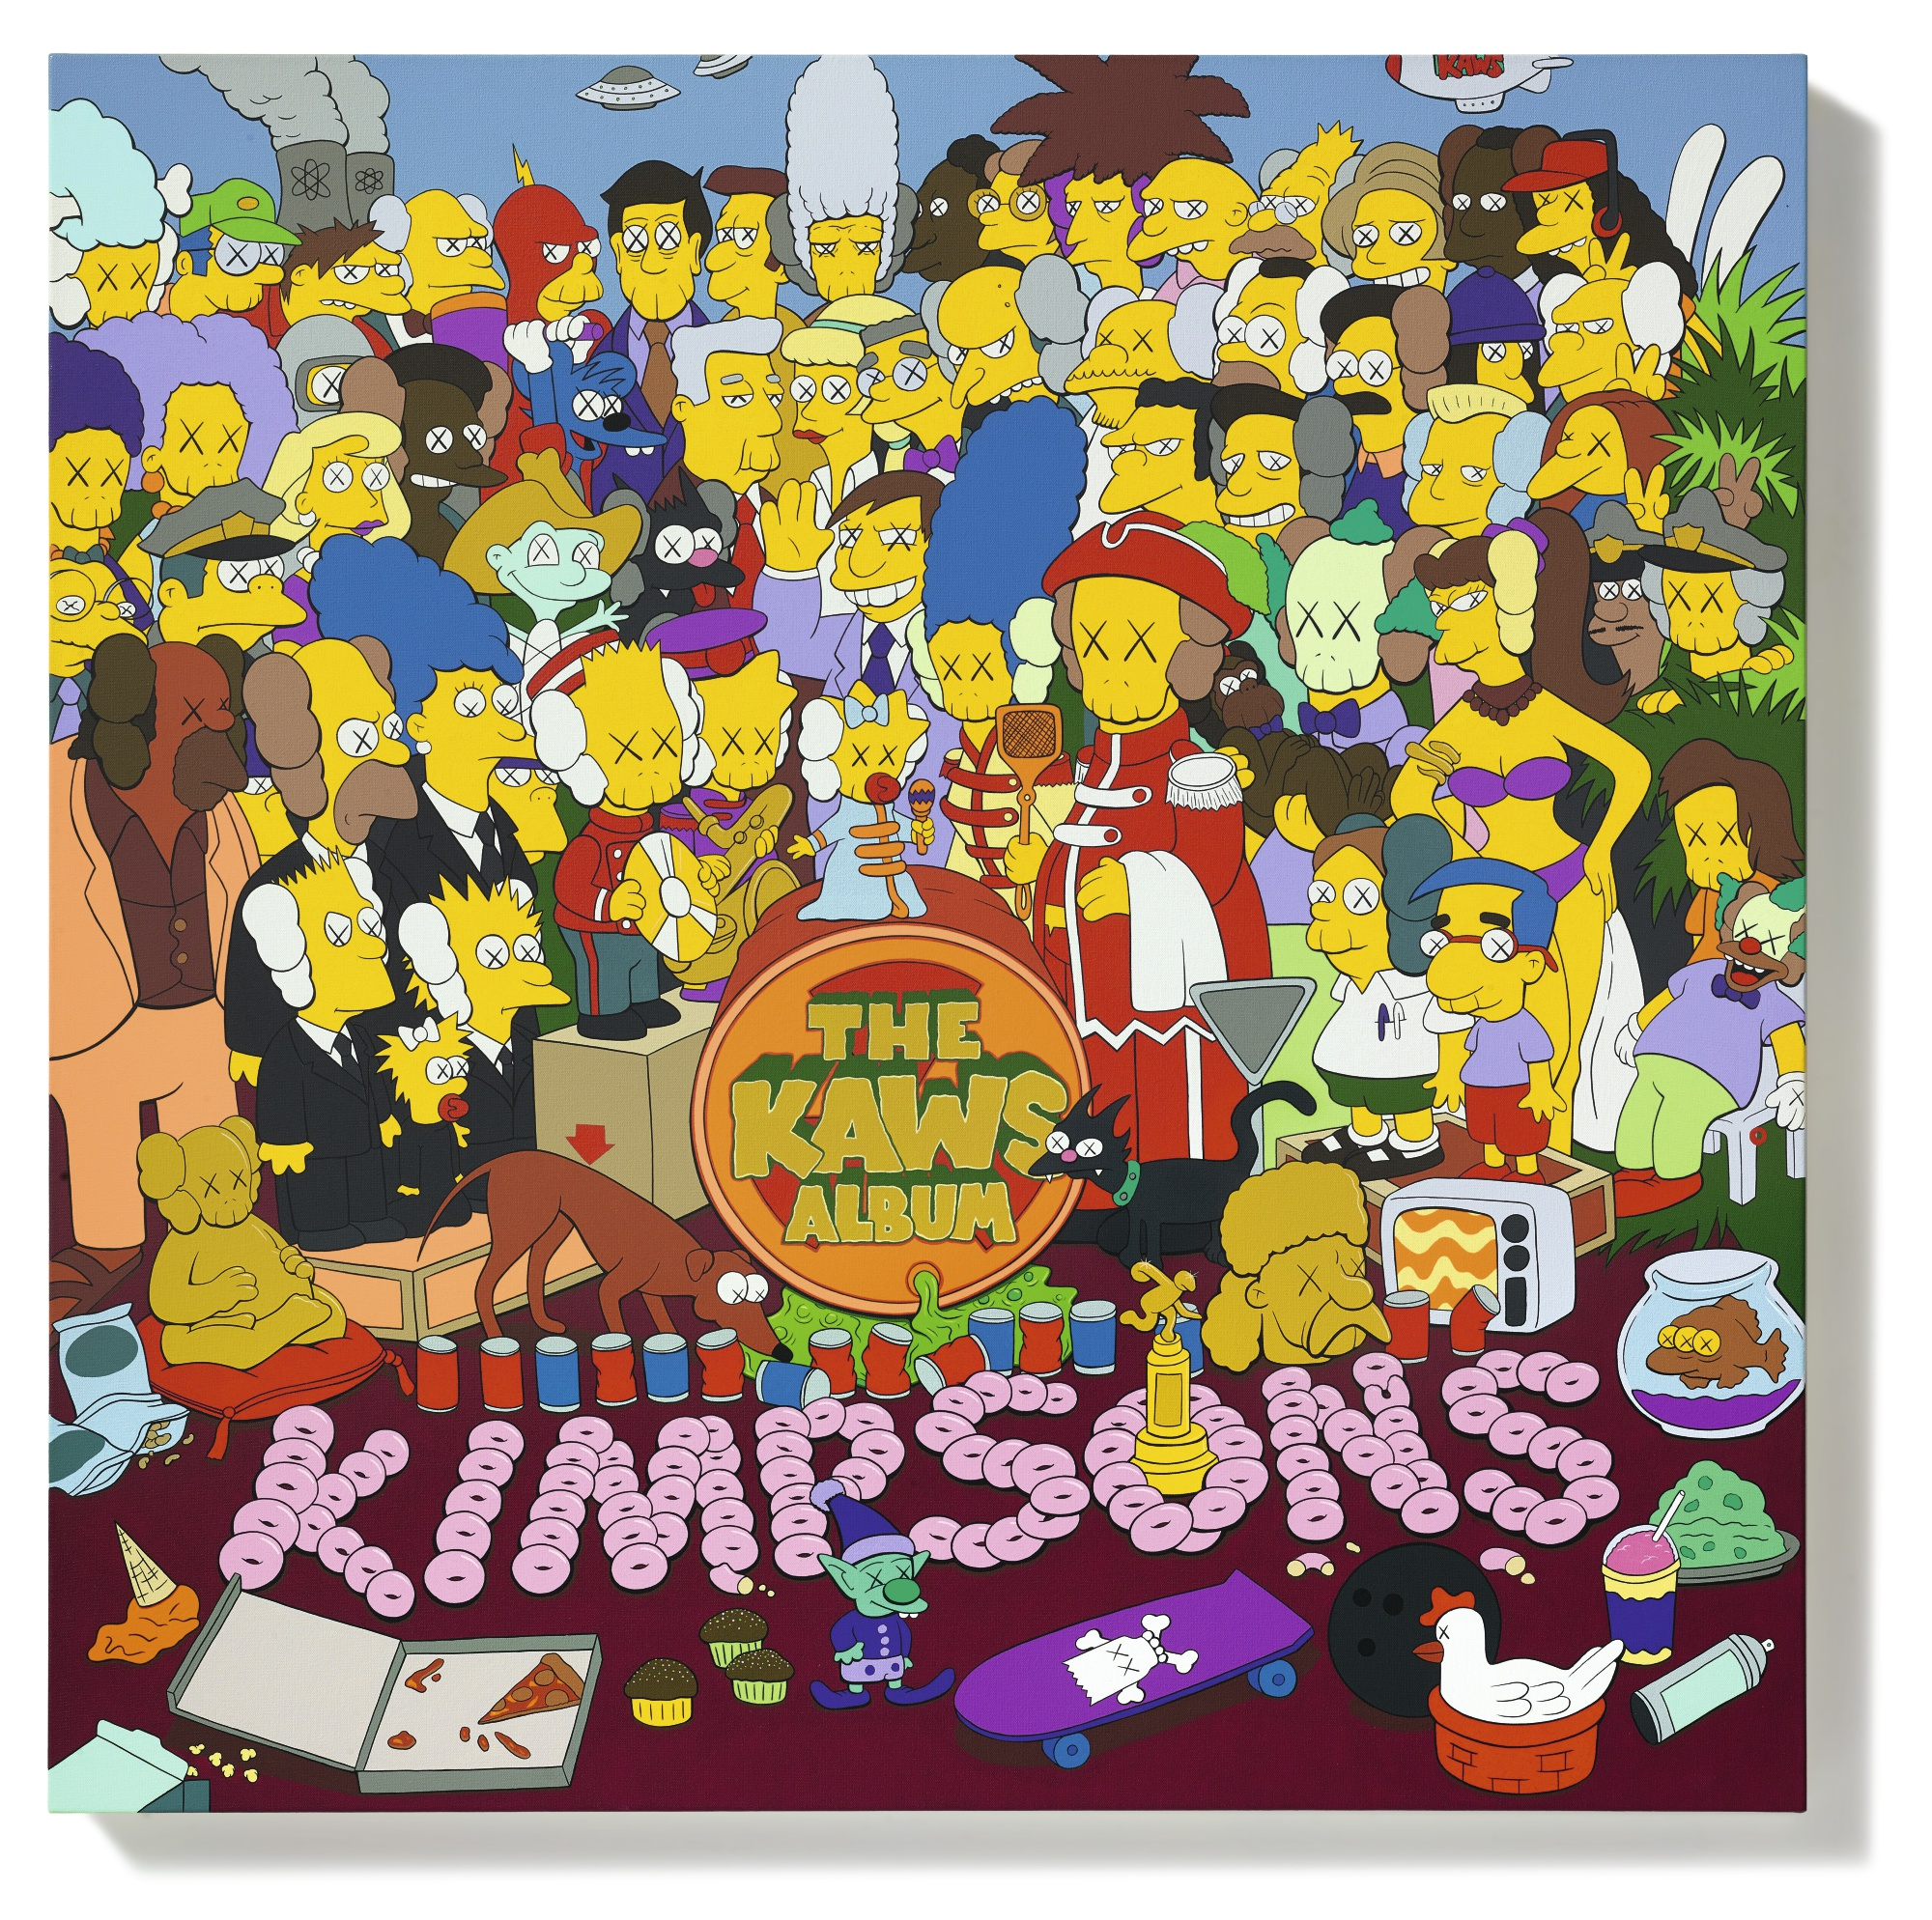 KAWS made $14 million from Bill Morrison art, and Morrison isn't happy